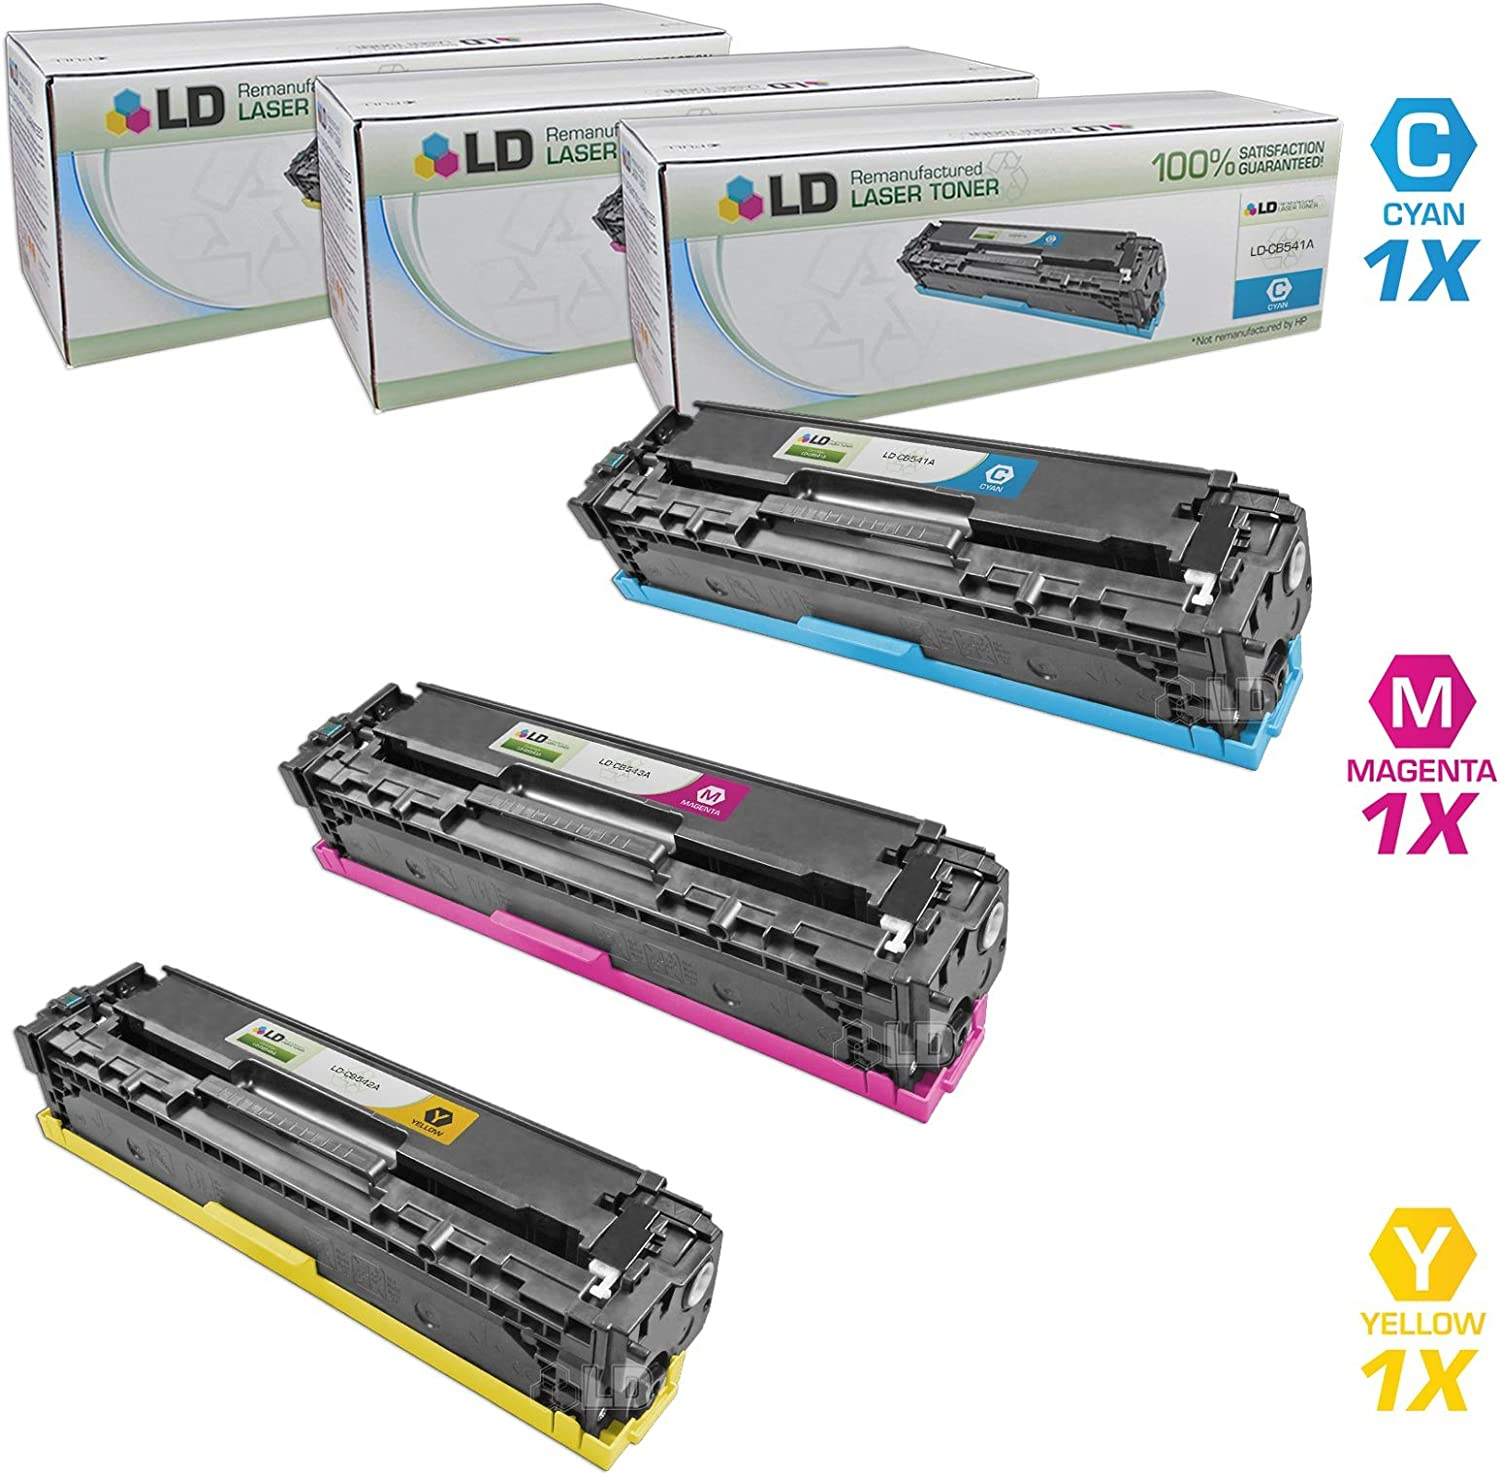 LD Remanufactured Toner Cartridge Replacement for HP 125A (Cyan, Magenta, Yellow, 3-Pack)